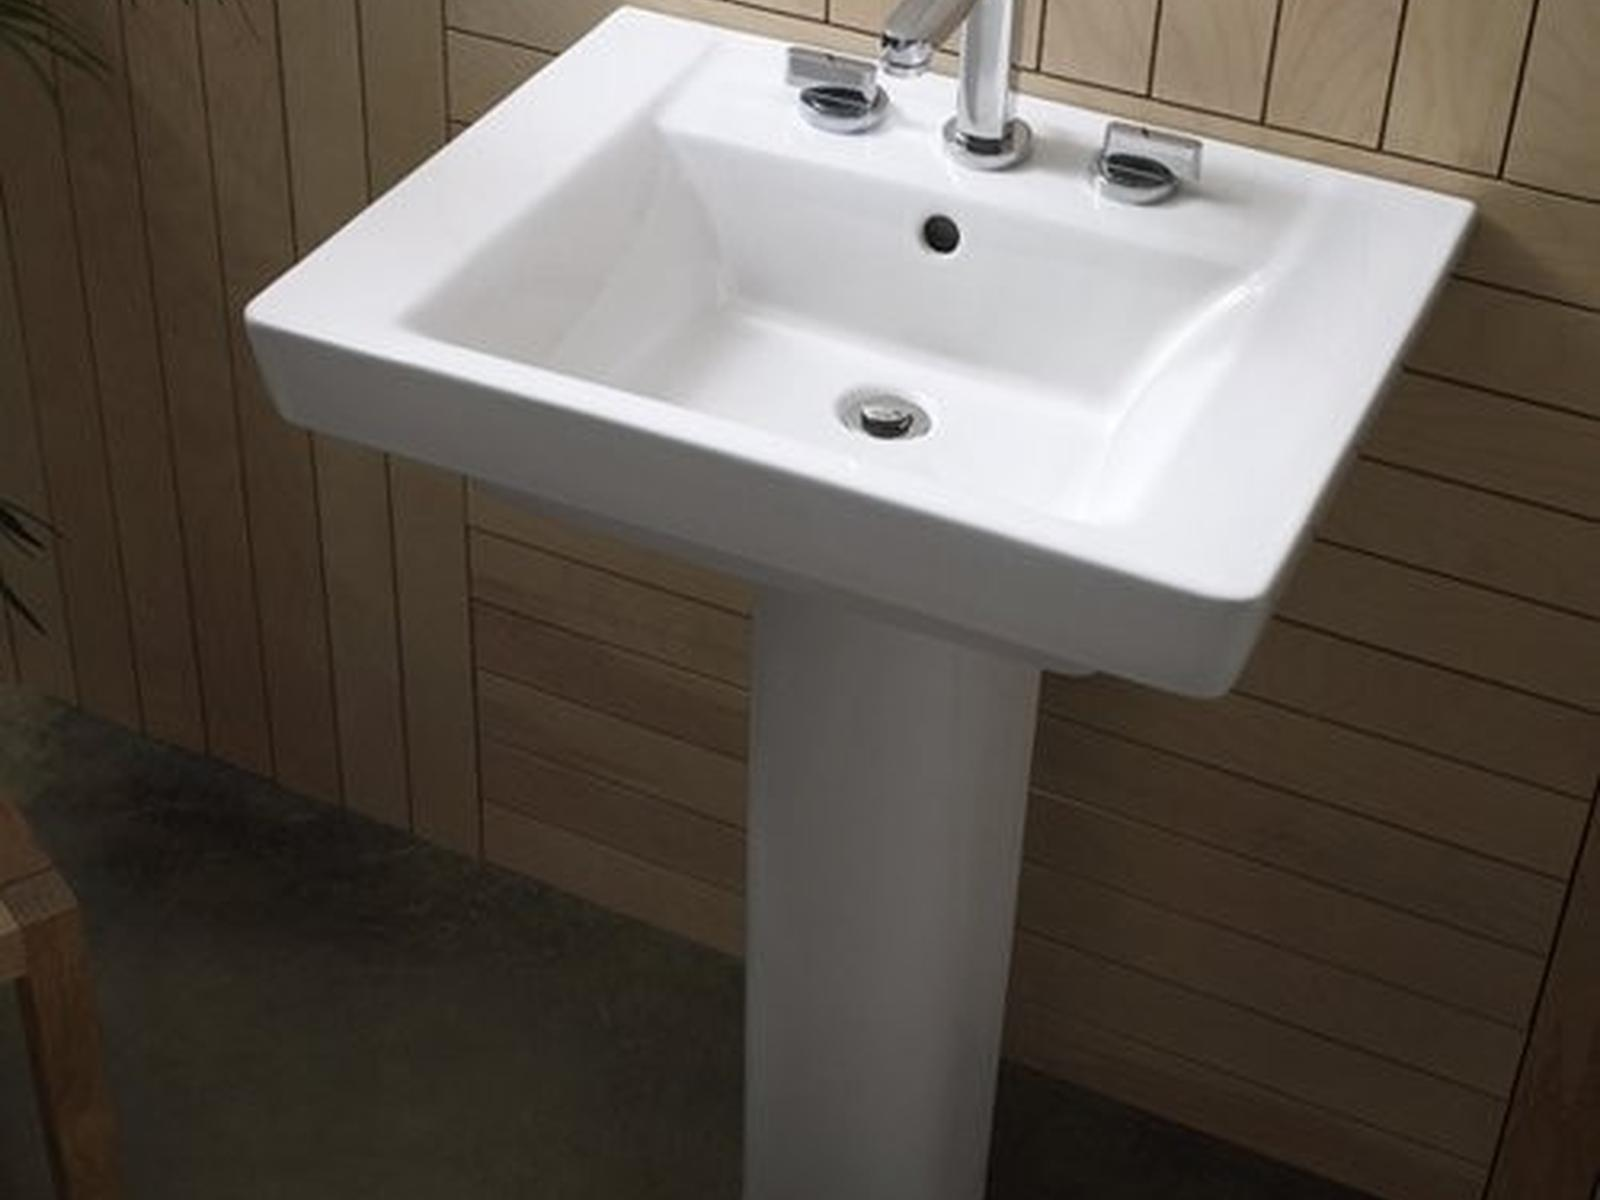 Amazing barclay sinks single bowl double bowl stainless kitchen sink barclay sinks for kitchen ideas